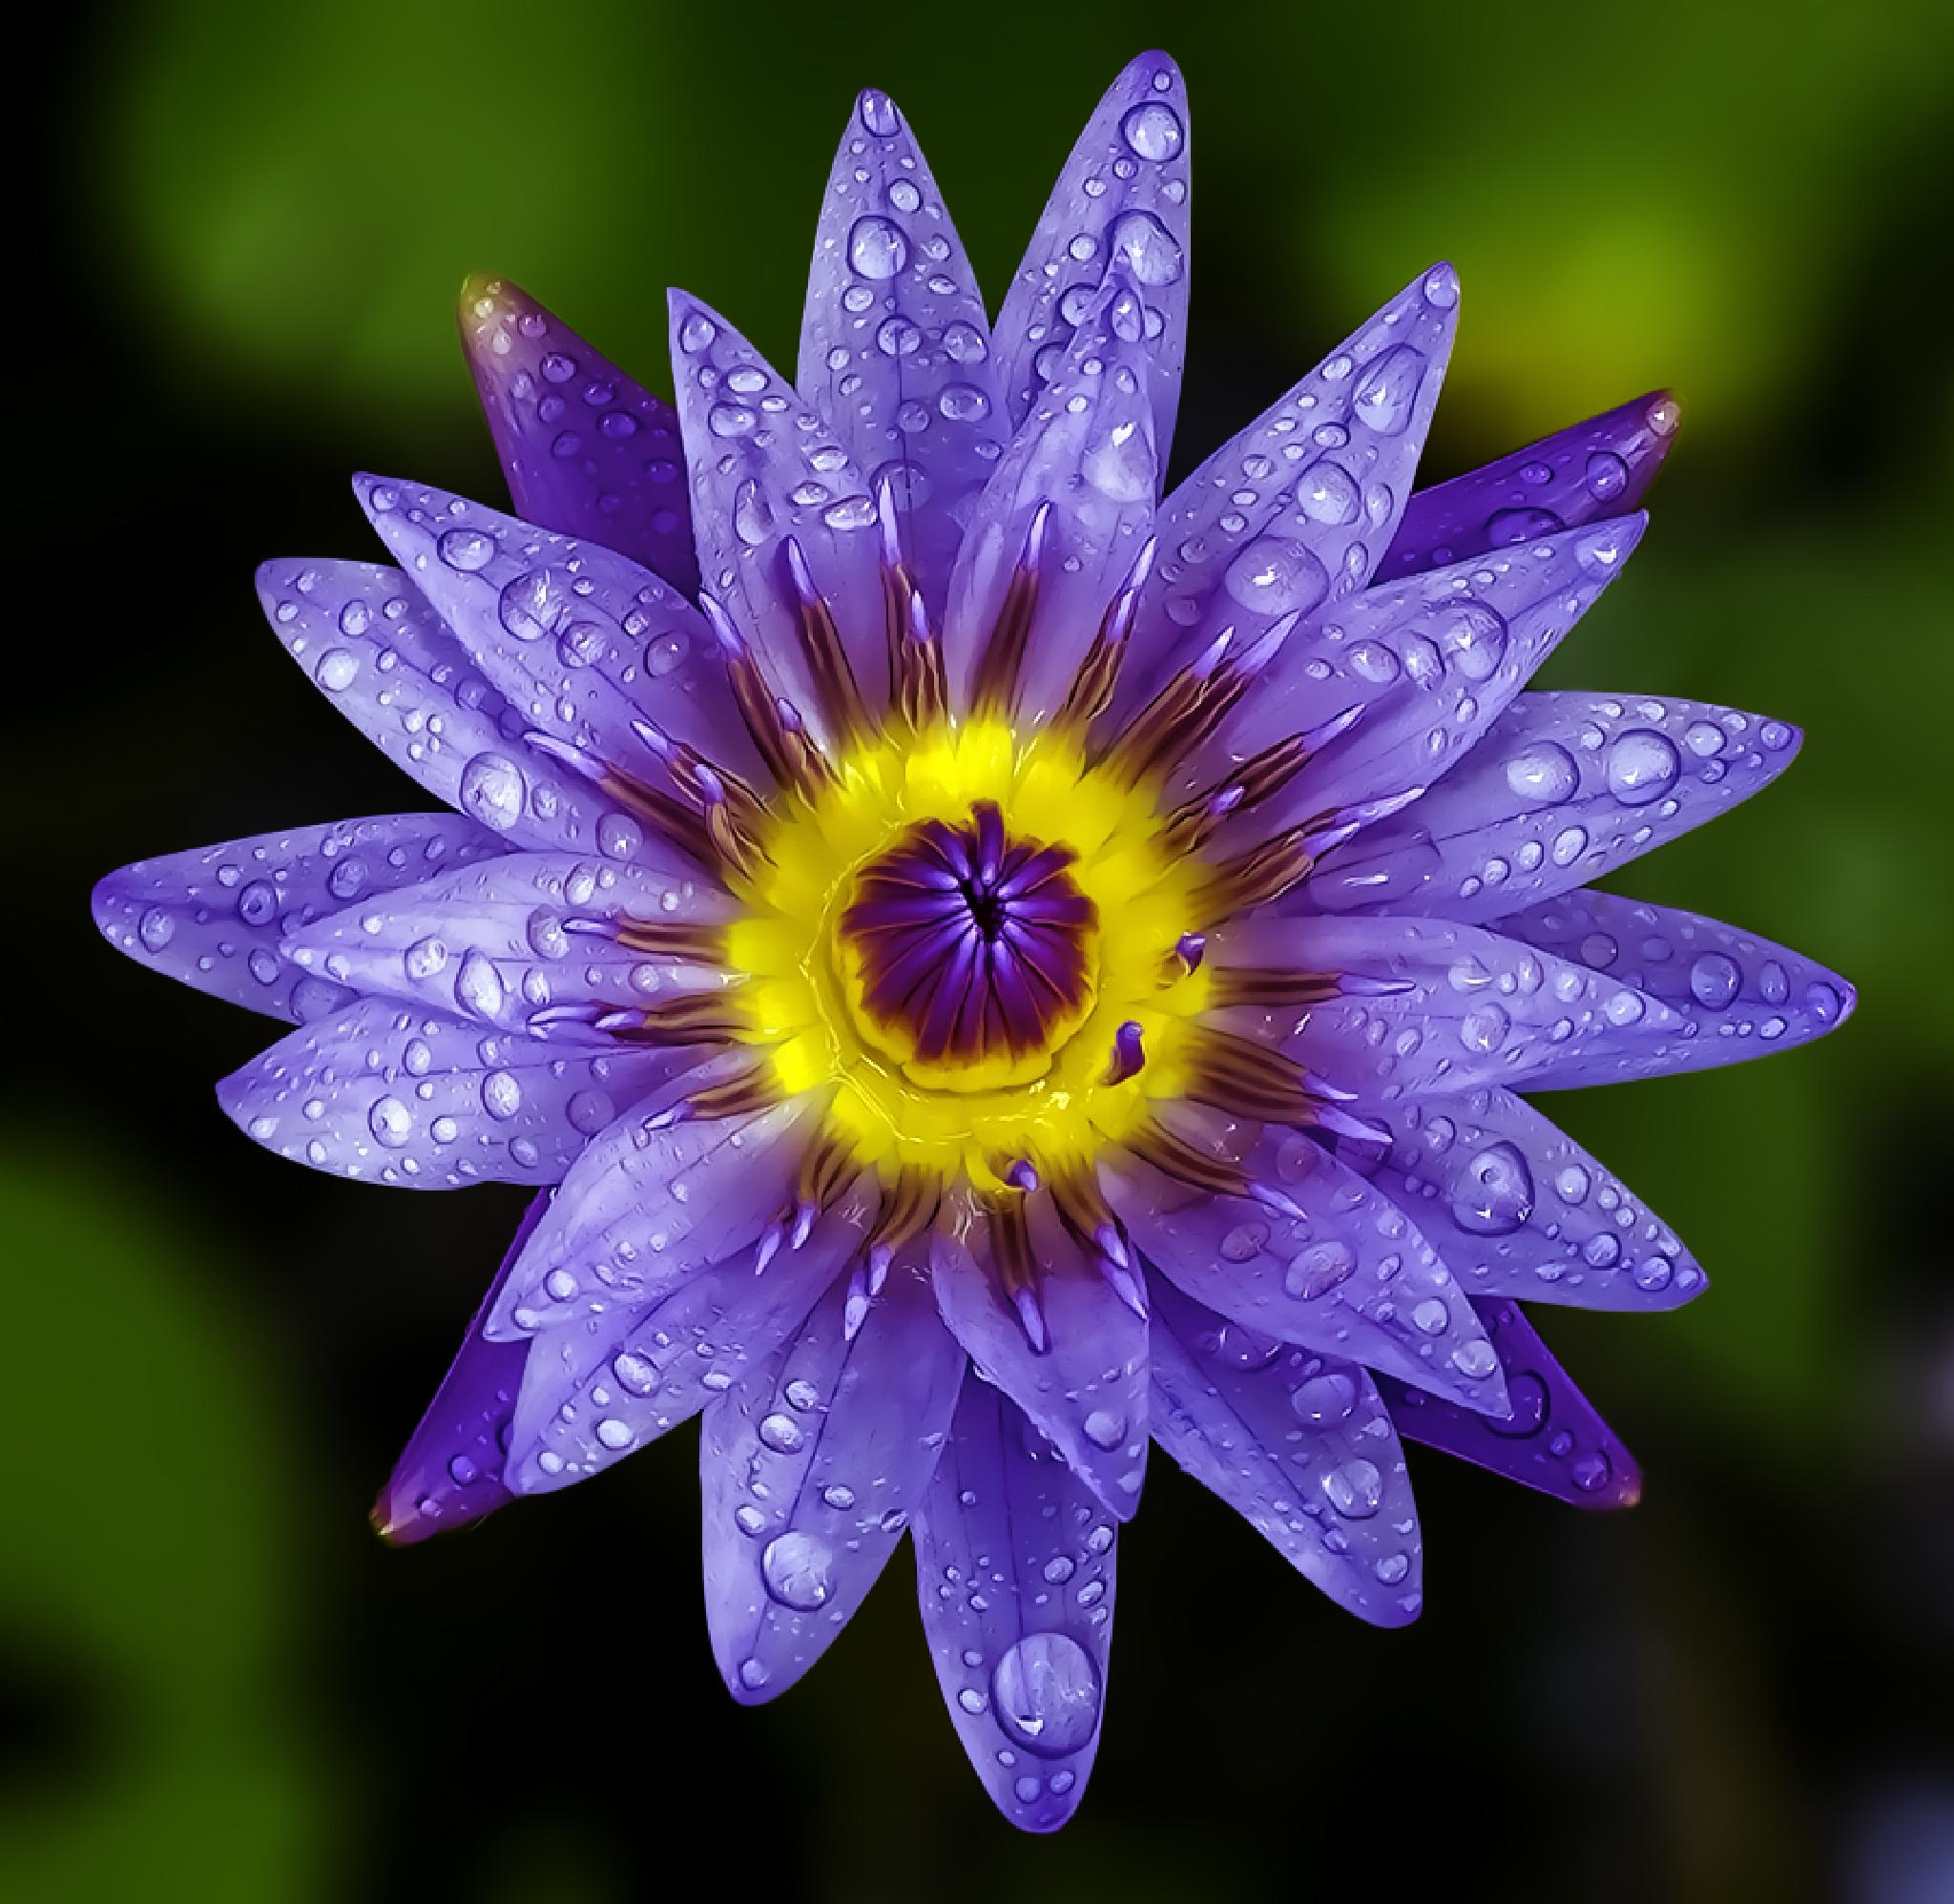 waterlily by asher